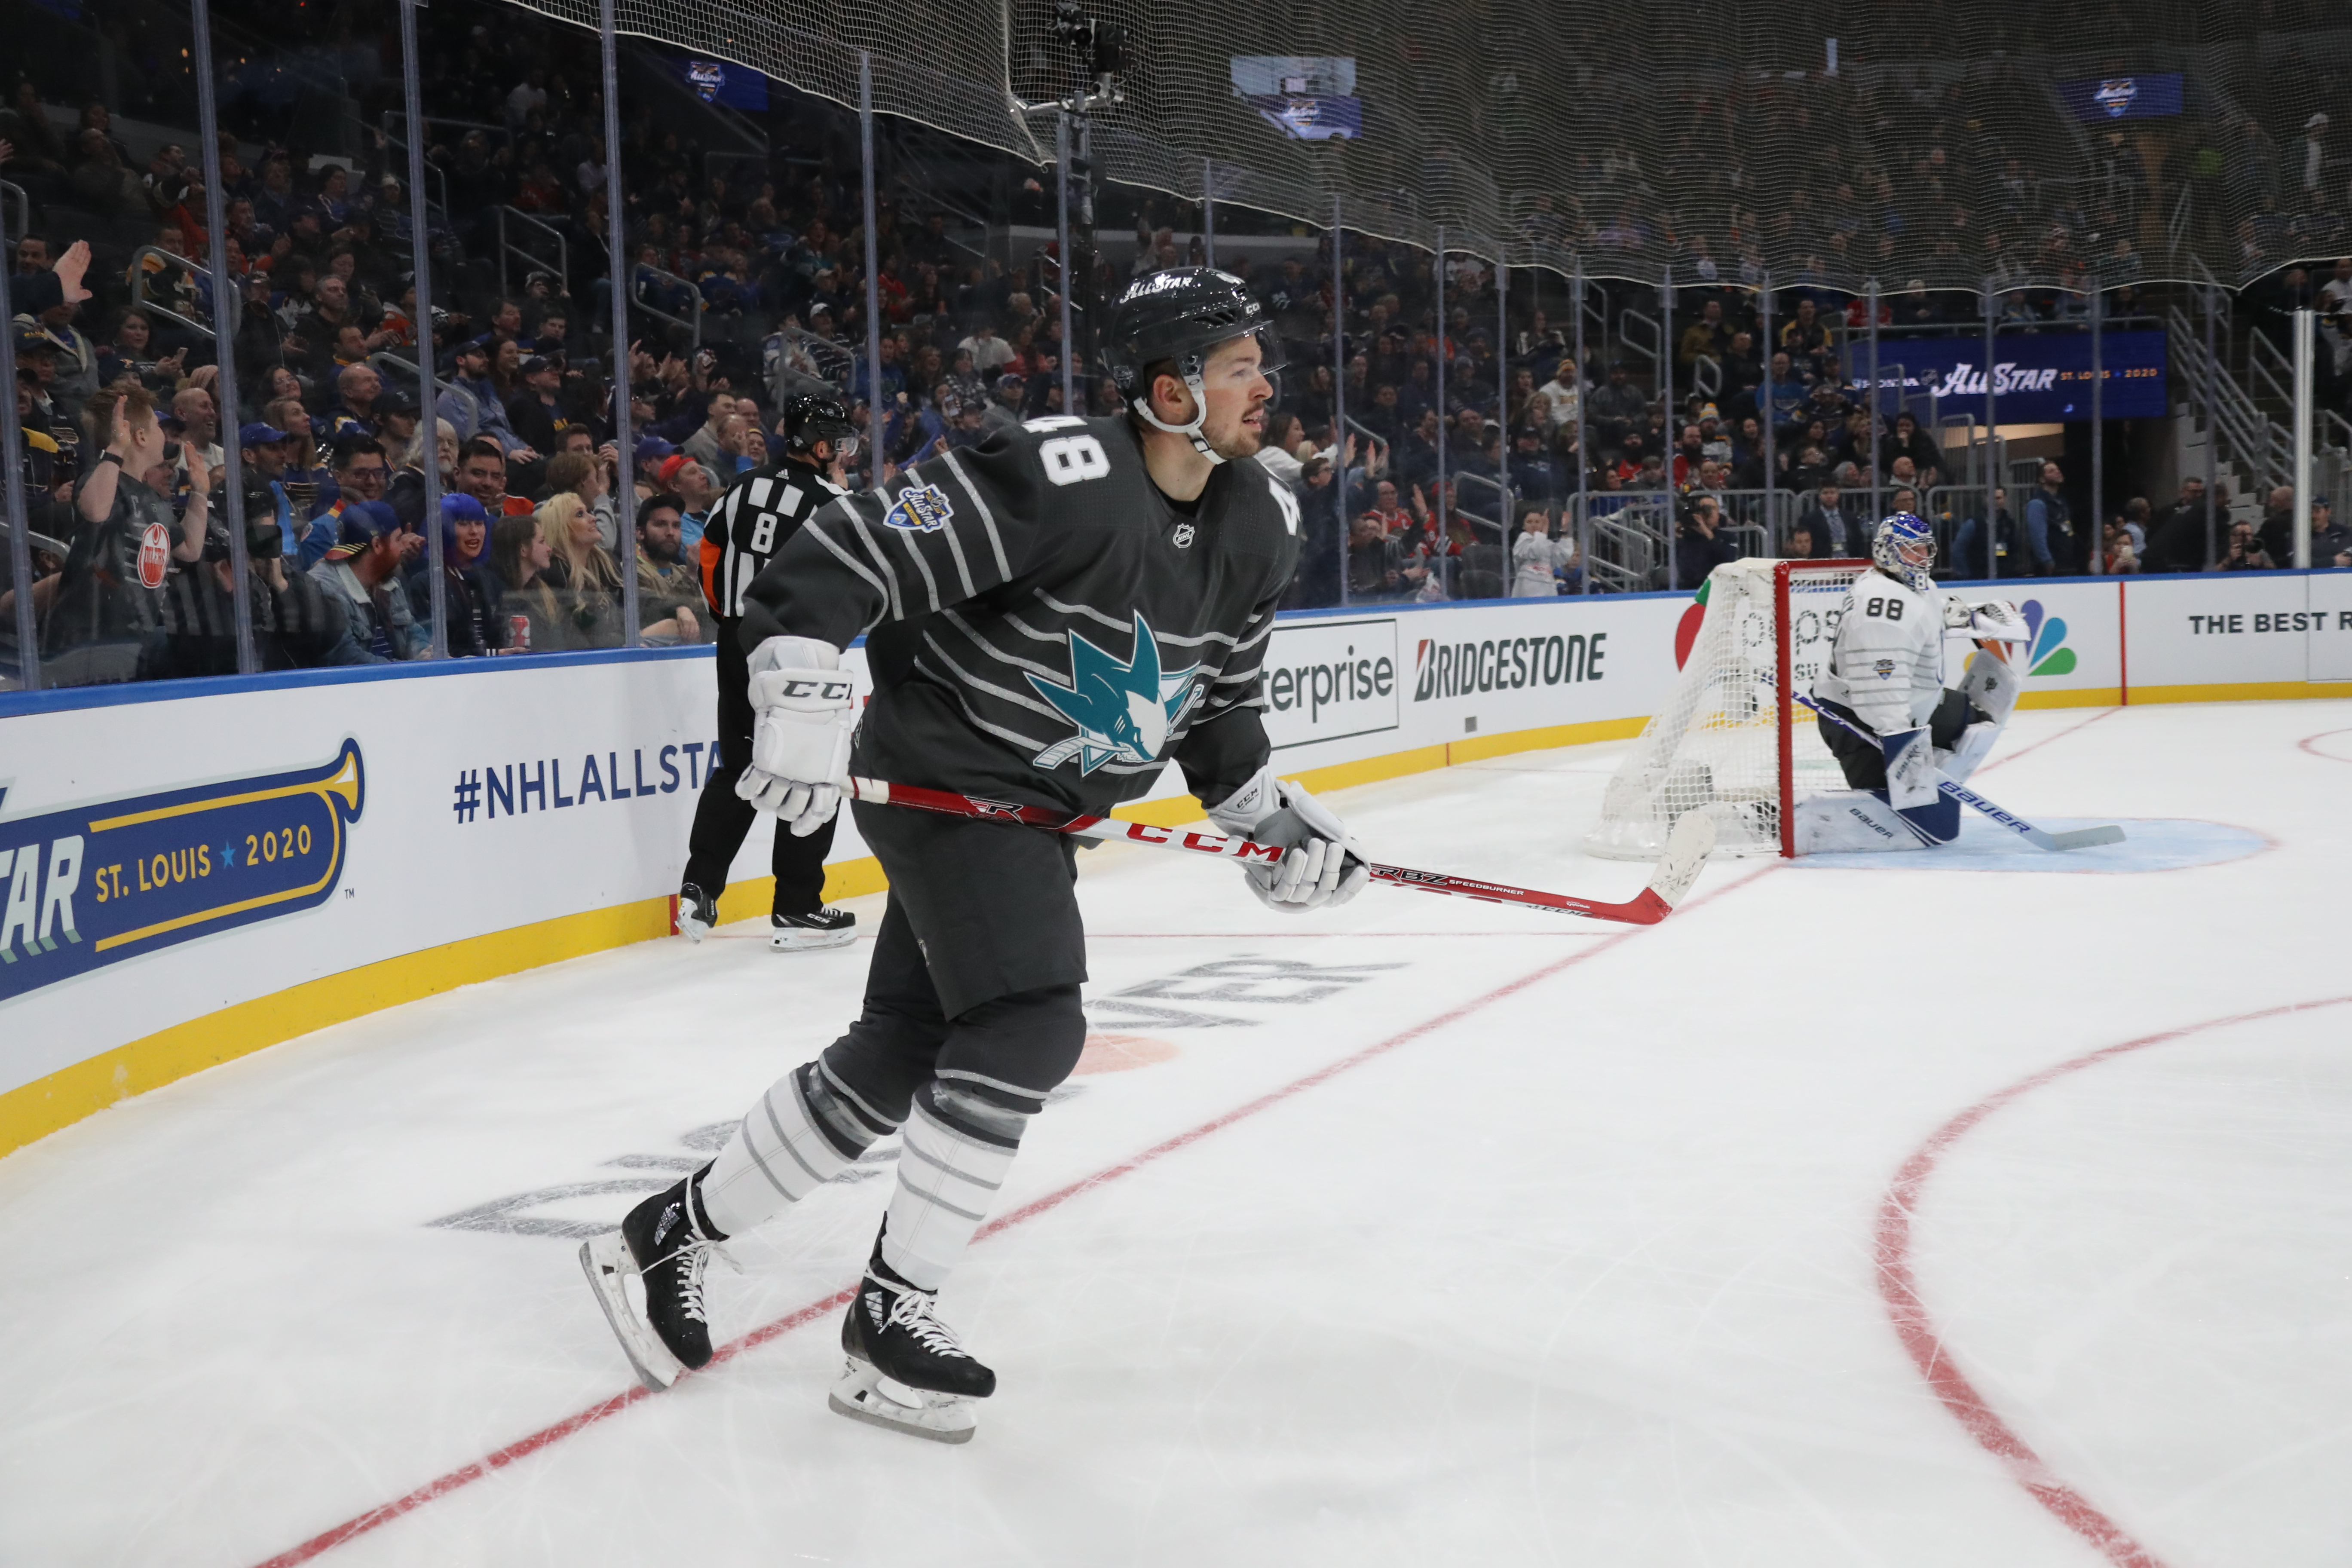 Tomas Hertl #48 of the San Jose Sharks celebrates his game winning goal at 7:24 of the second period during the game between Atlantic Division v Pacific Division during the 2020 Honda NHL All-Star Game at Enterprise Center on January 25, 2020 in St Louis, Missouri.